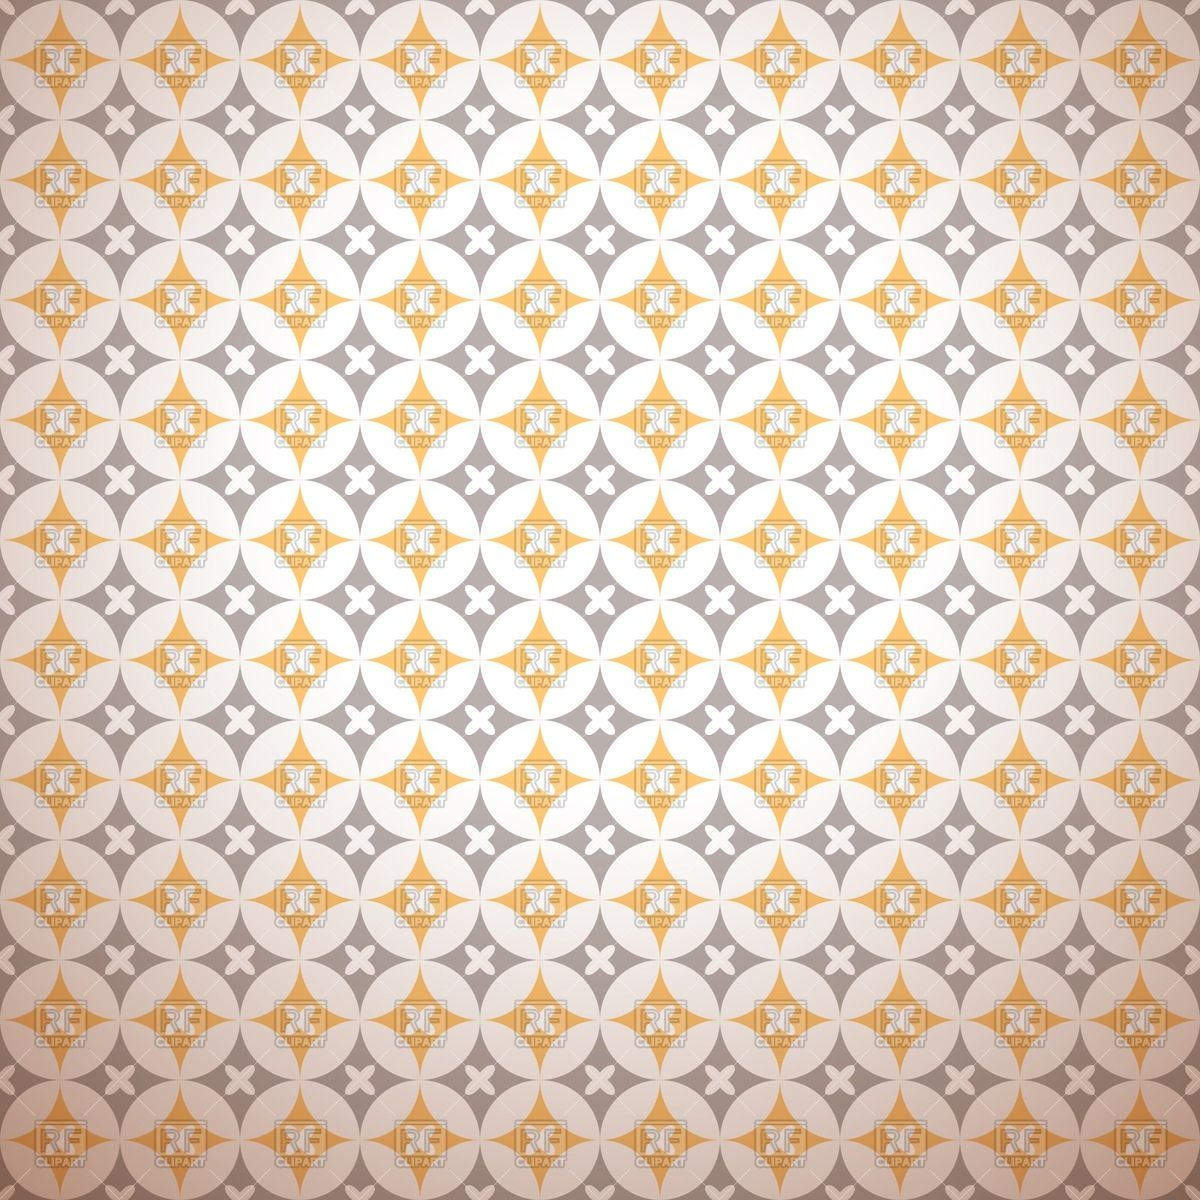 Geometric retro wallpaper 40642 download royalty free vector clipart 1200x1200